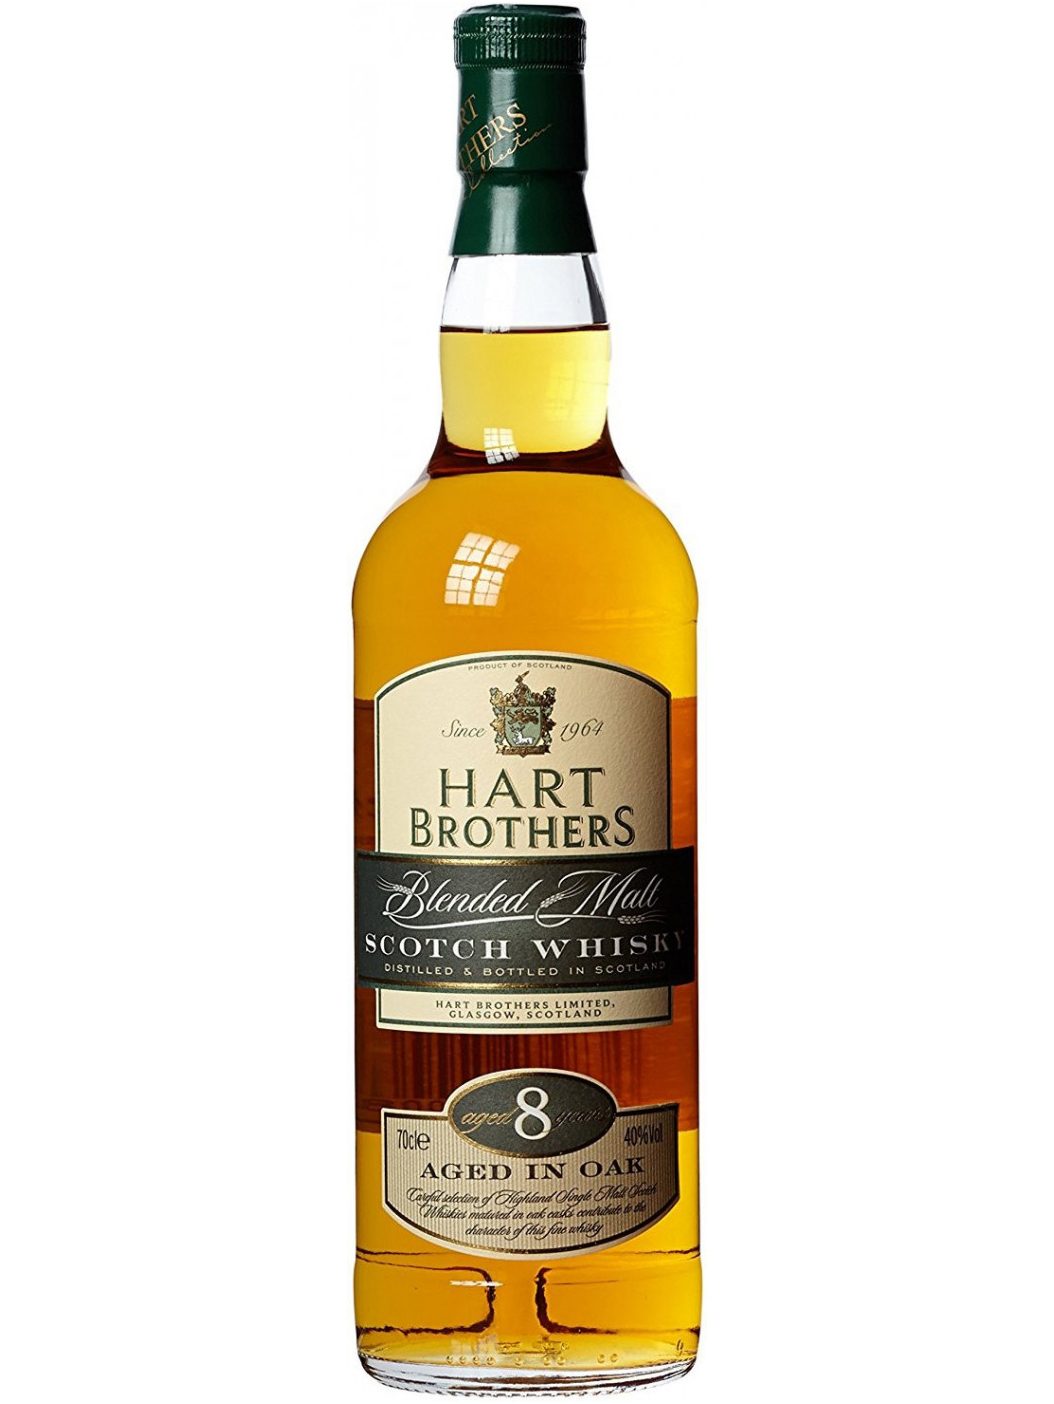 HART BROTHERS 8 YEARS blended malt